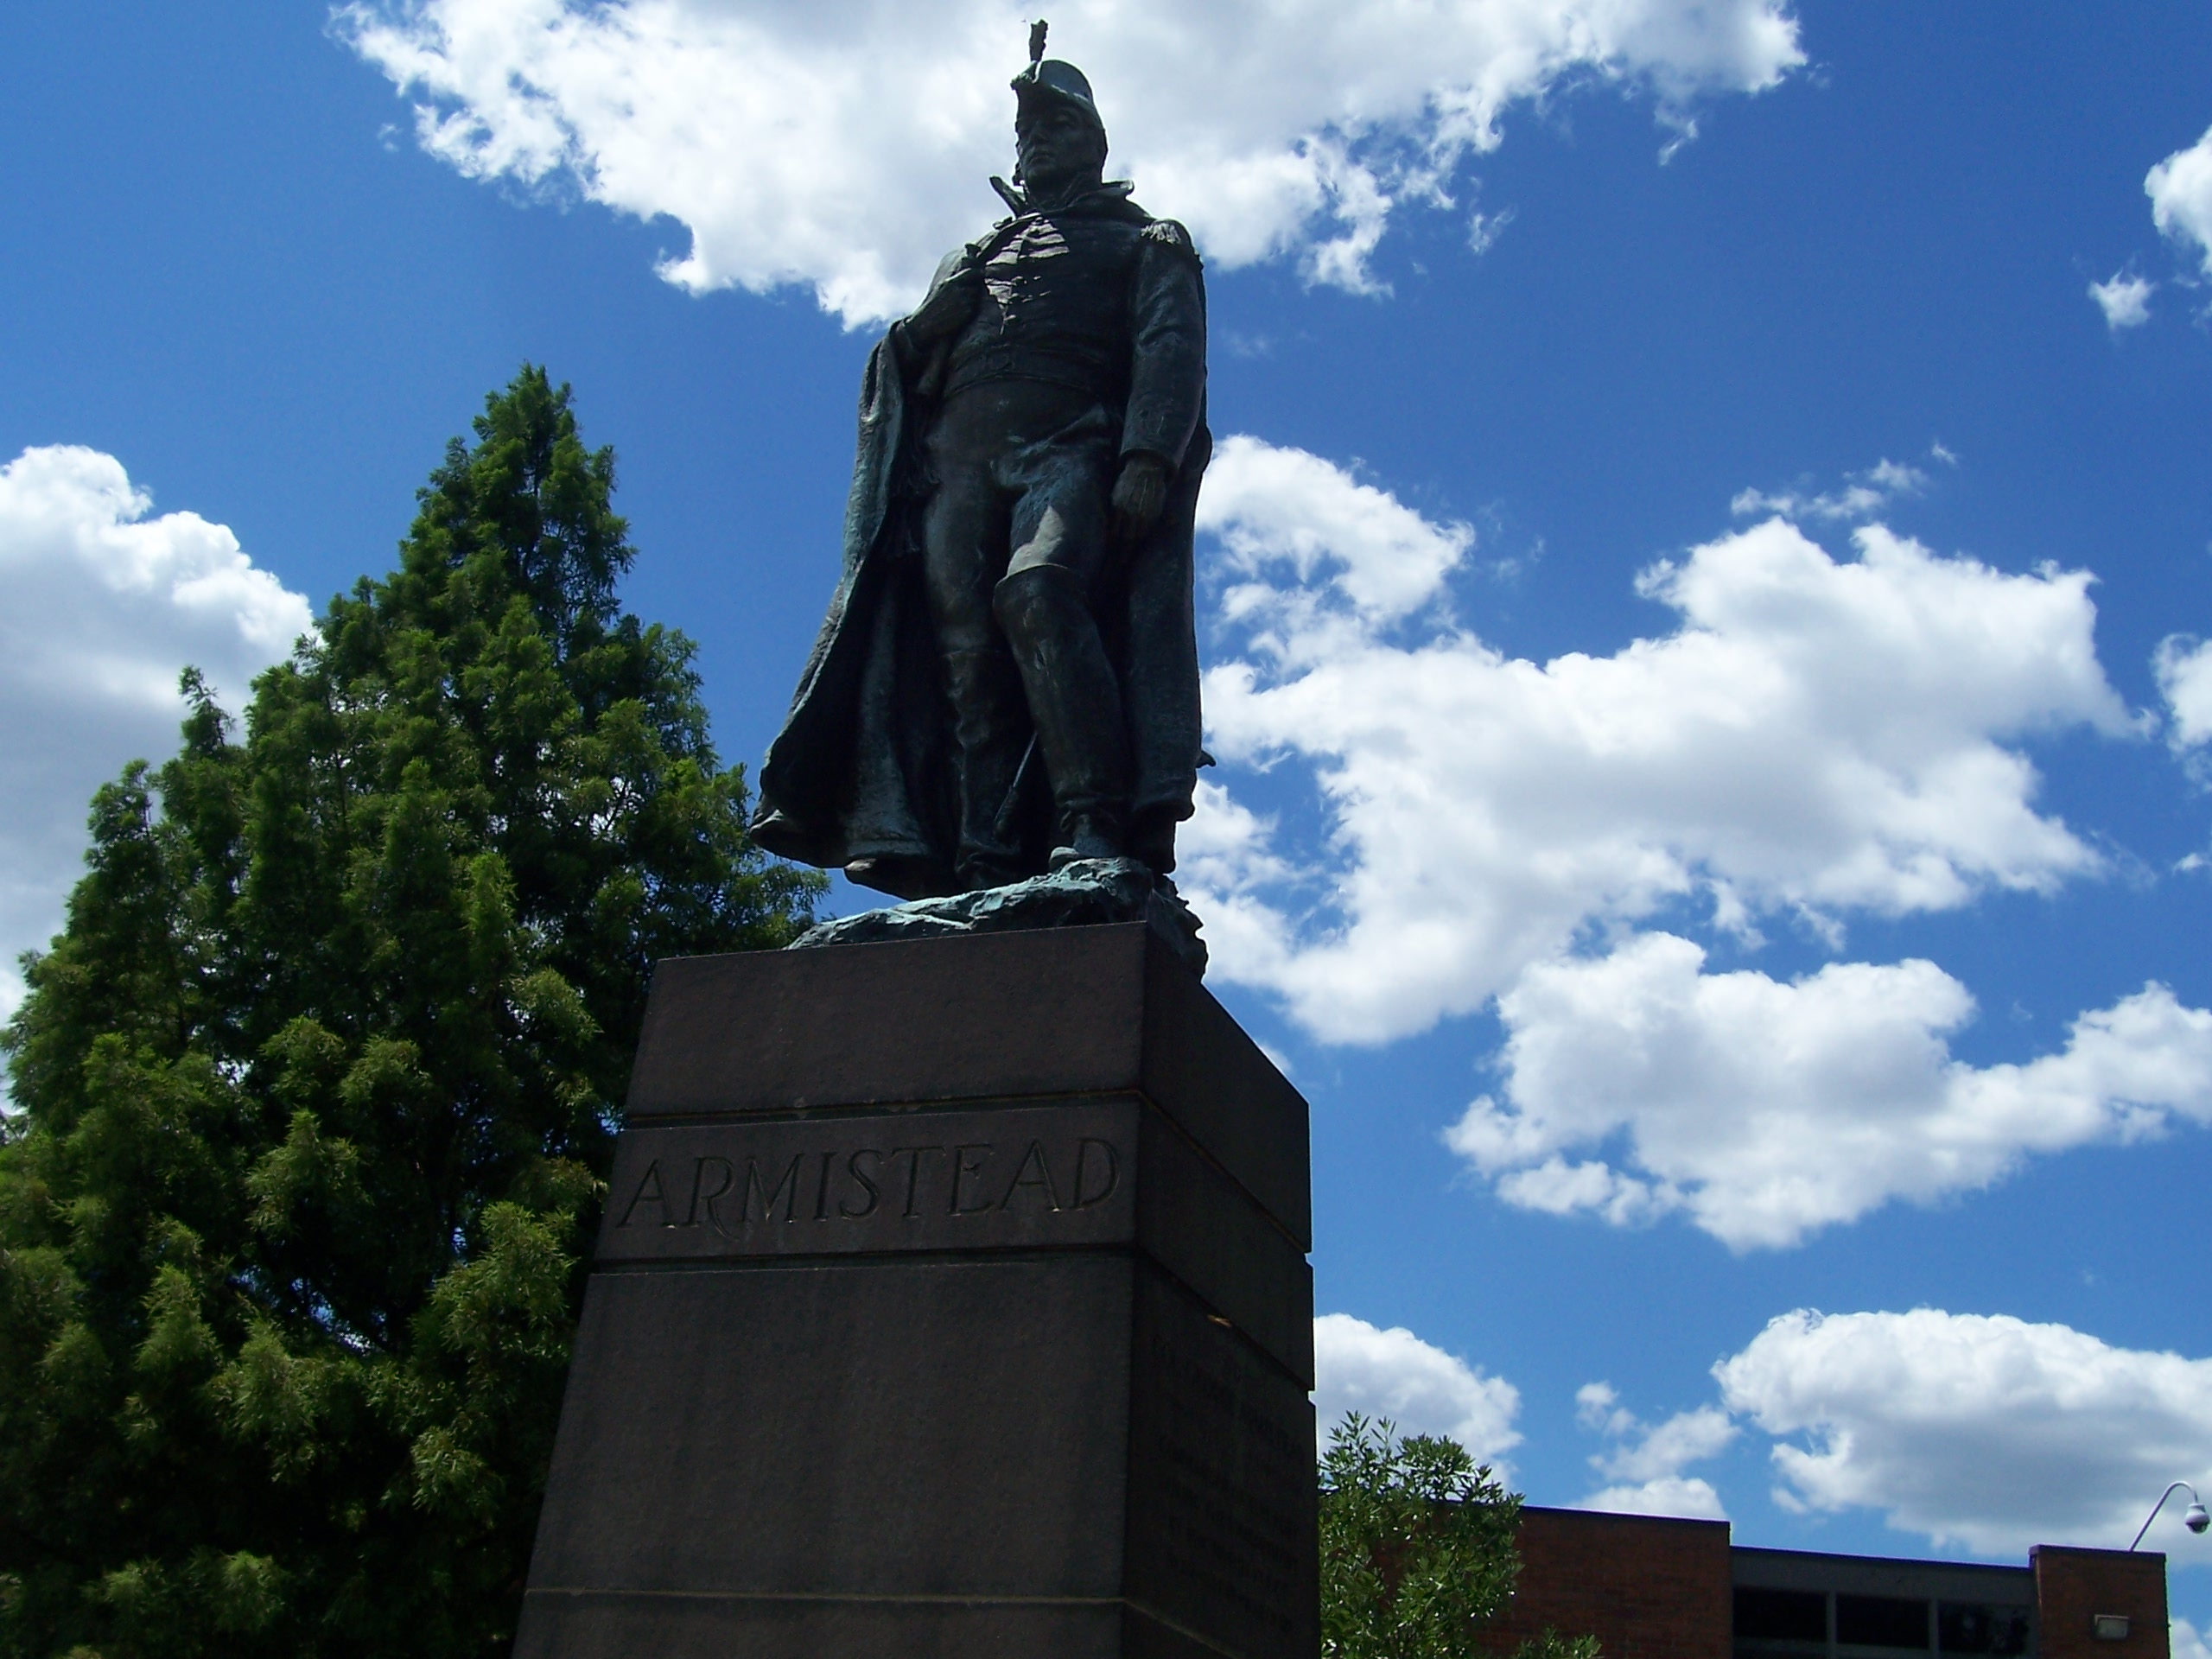 Armistead statue at visitor's center